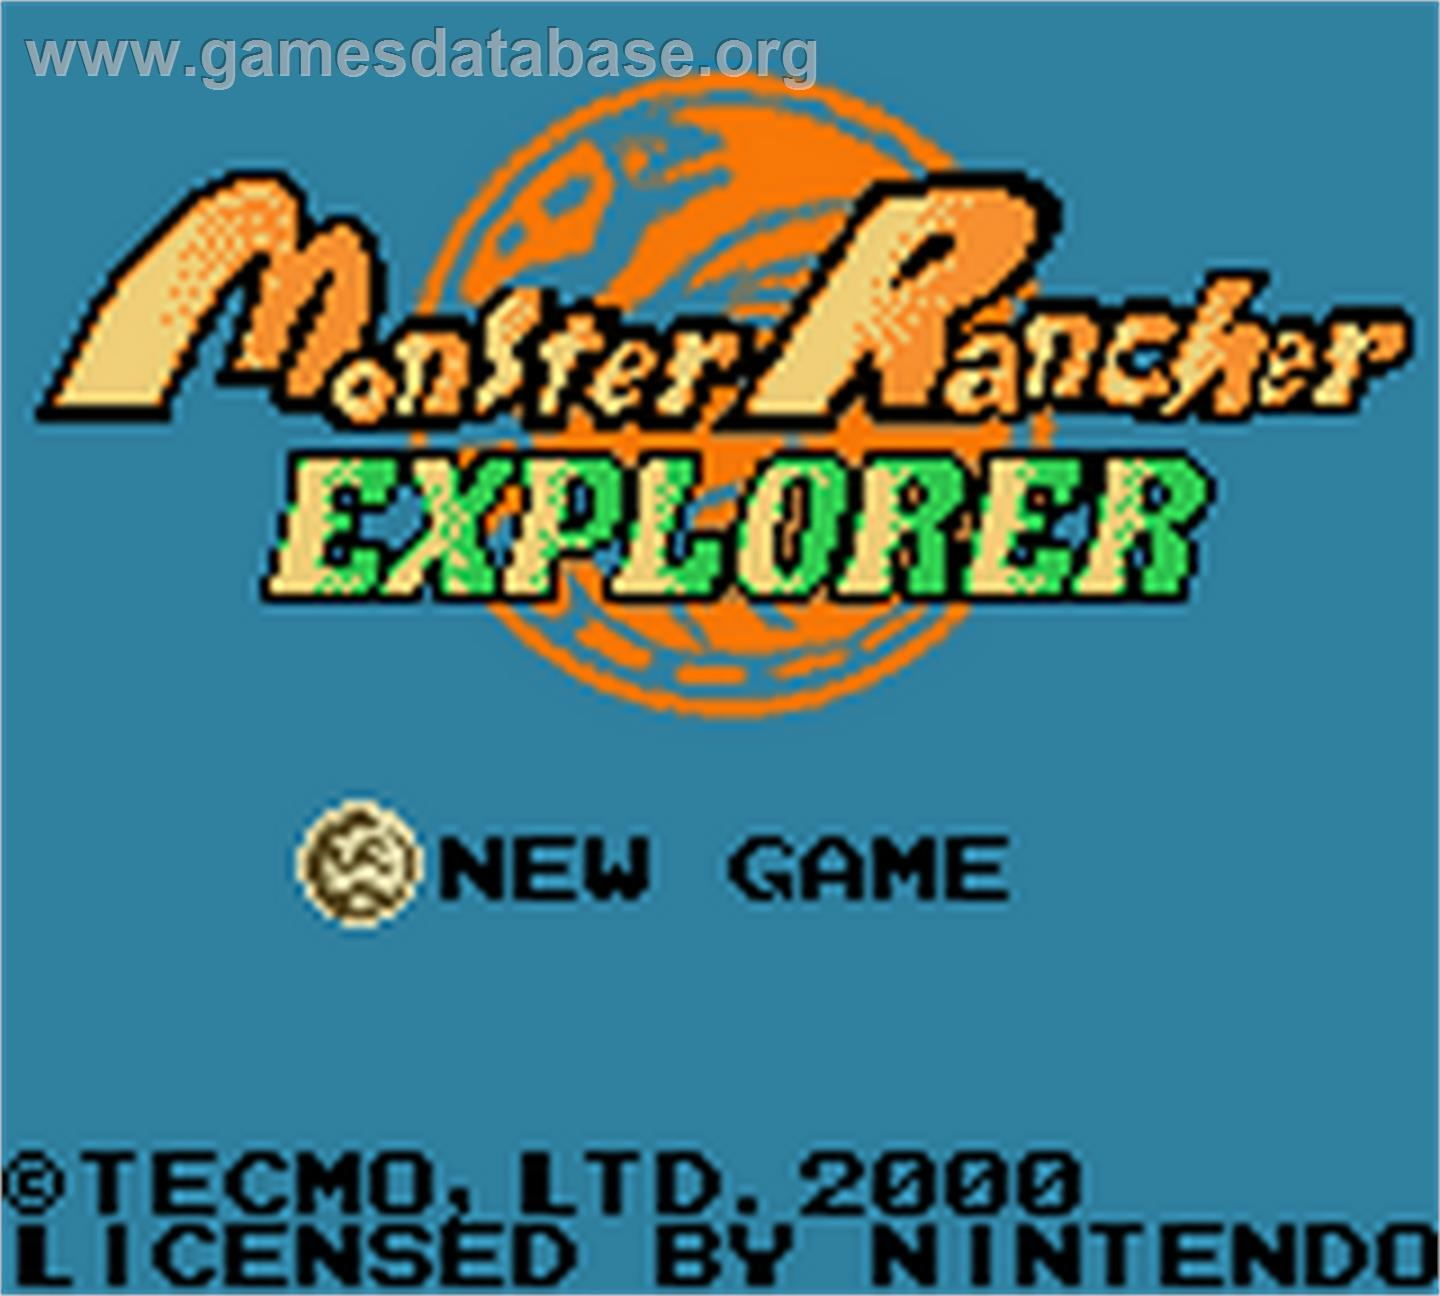 Monster rancher xxx nude images